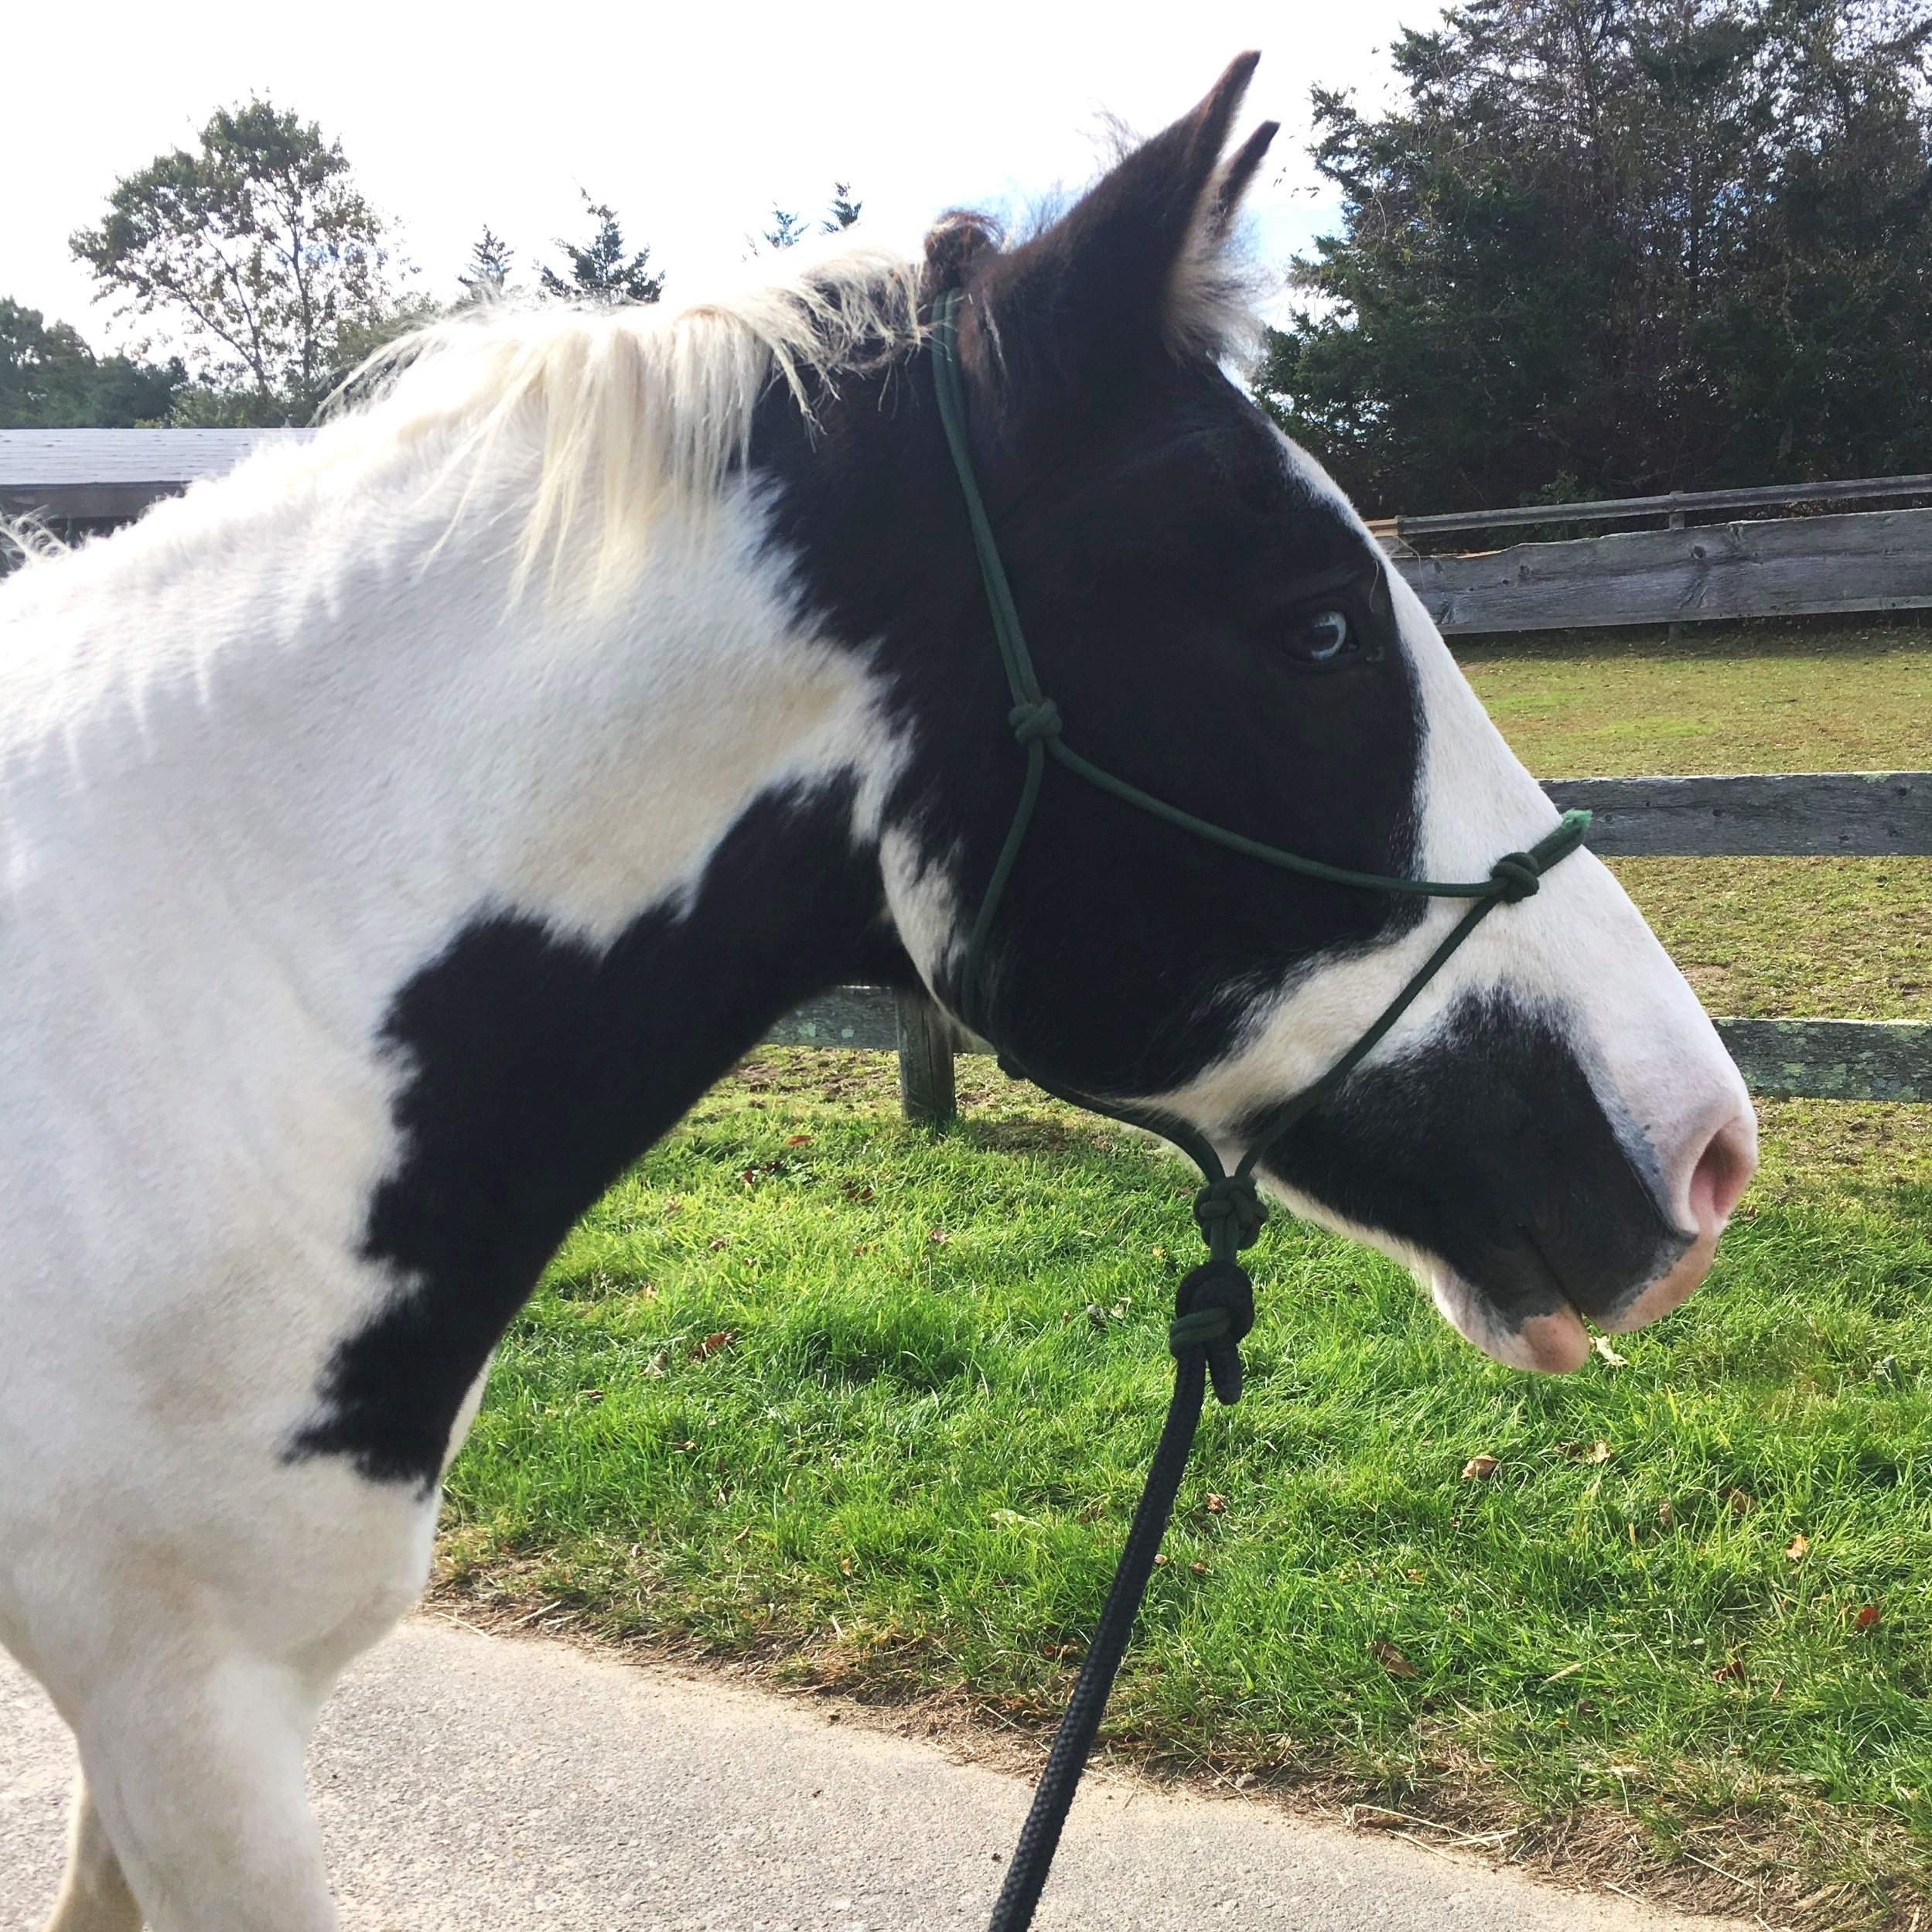 Pumba - Pumba is the cutest blue eyed paint cross. He loves attention and going out on trails. Pumba is steady and safe for all levels of riders and takes part in all our programs, one of his favorite activities is working with students learning mounted archery and doing pony rides for little kids. Pumba always comes up to say hi to visitors in a very polite and friendly way. He loves being part of the herd but sometimes we have to limit his grass consumption for health reasons.